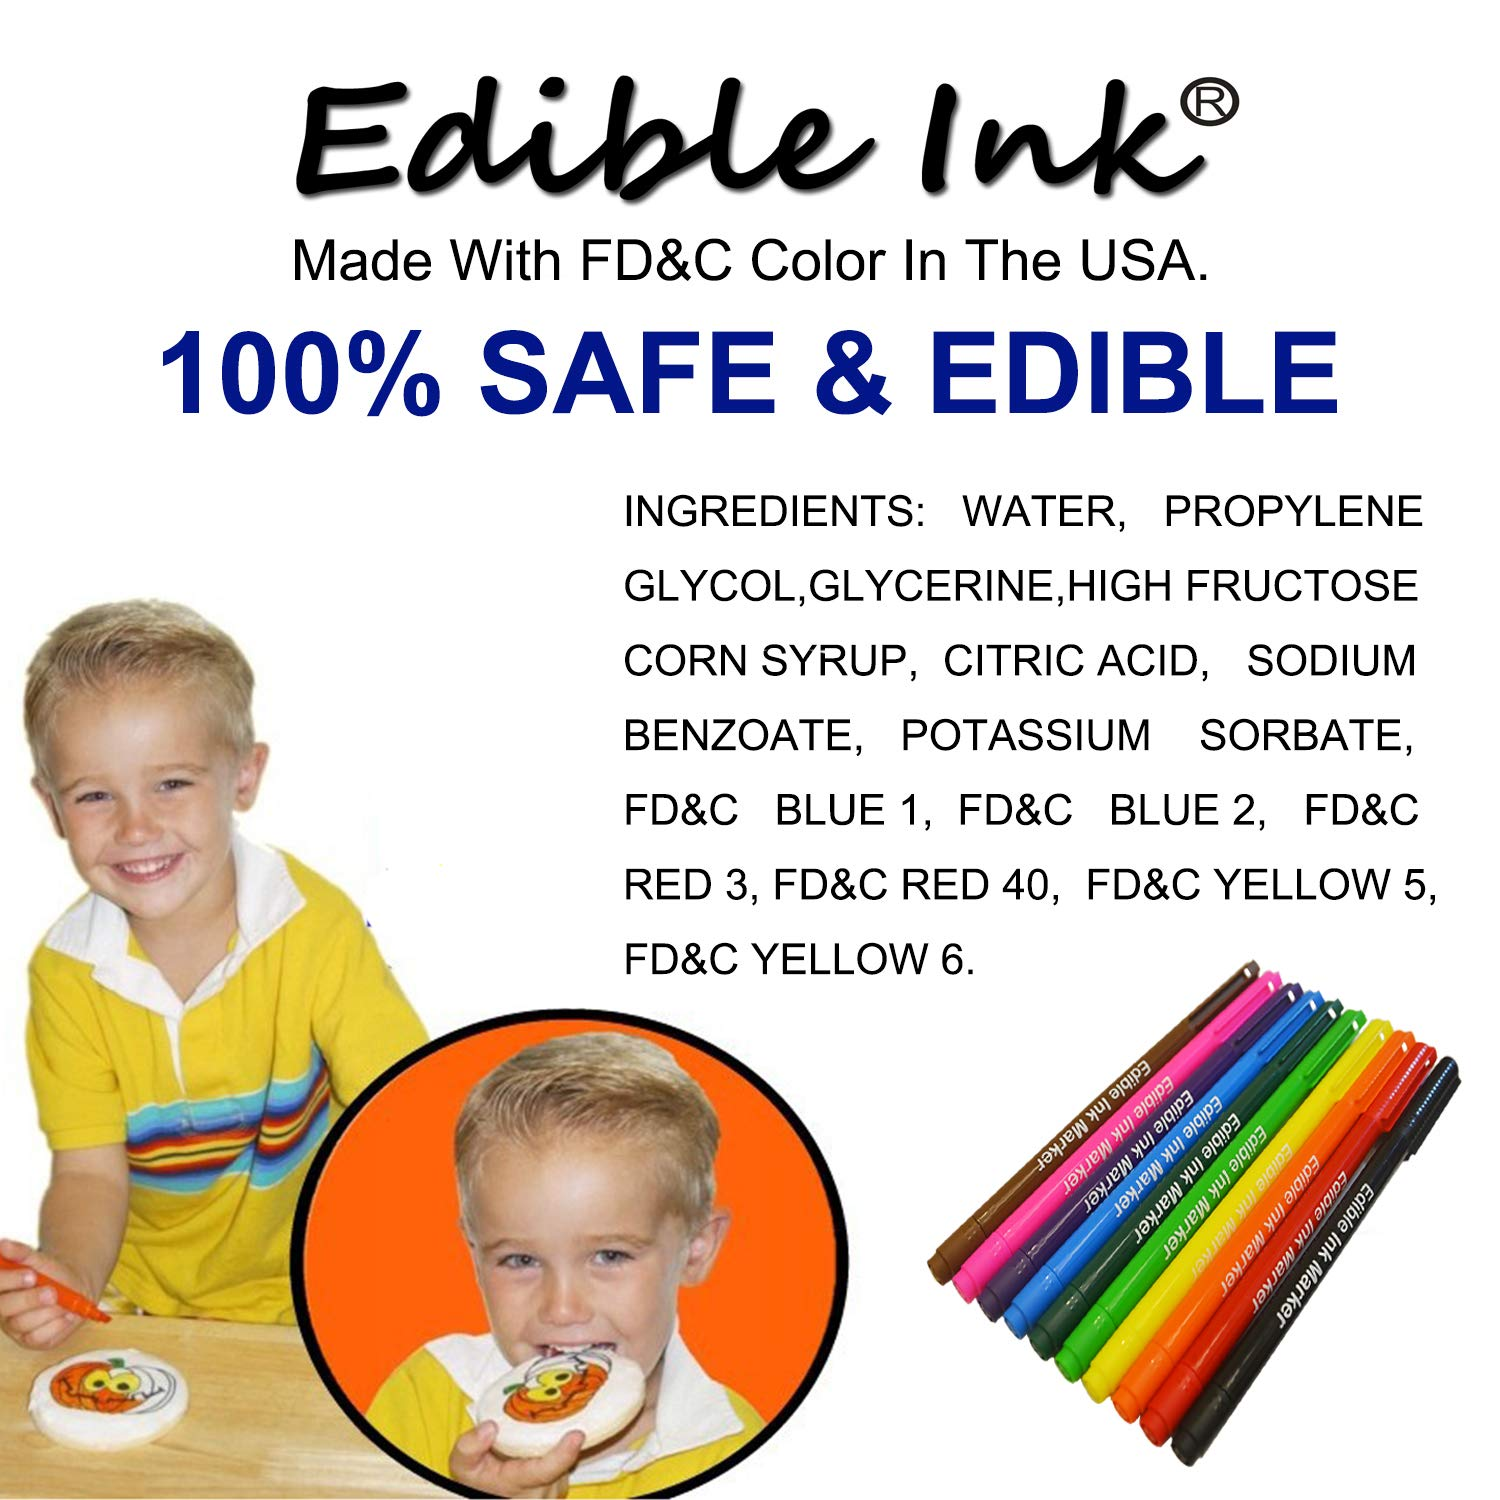 Food coloring Pens, 11Pcs Double Sided Food Grade and Edible Marker,Gourmet Writers for Decorating Fondant,Cakes, Cookies, Frosting, Easter Eggs, Thick Tip and Fine Tip, 10 Colors, by Edibleink by EdibleInk (Image #4)